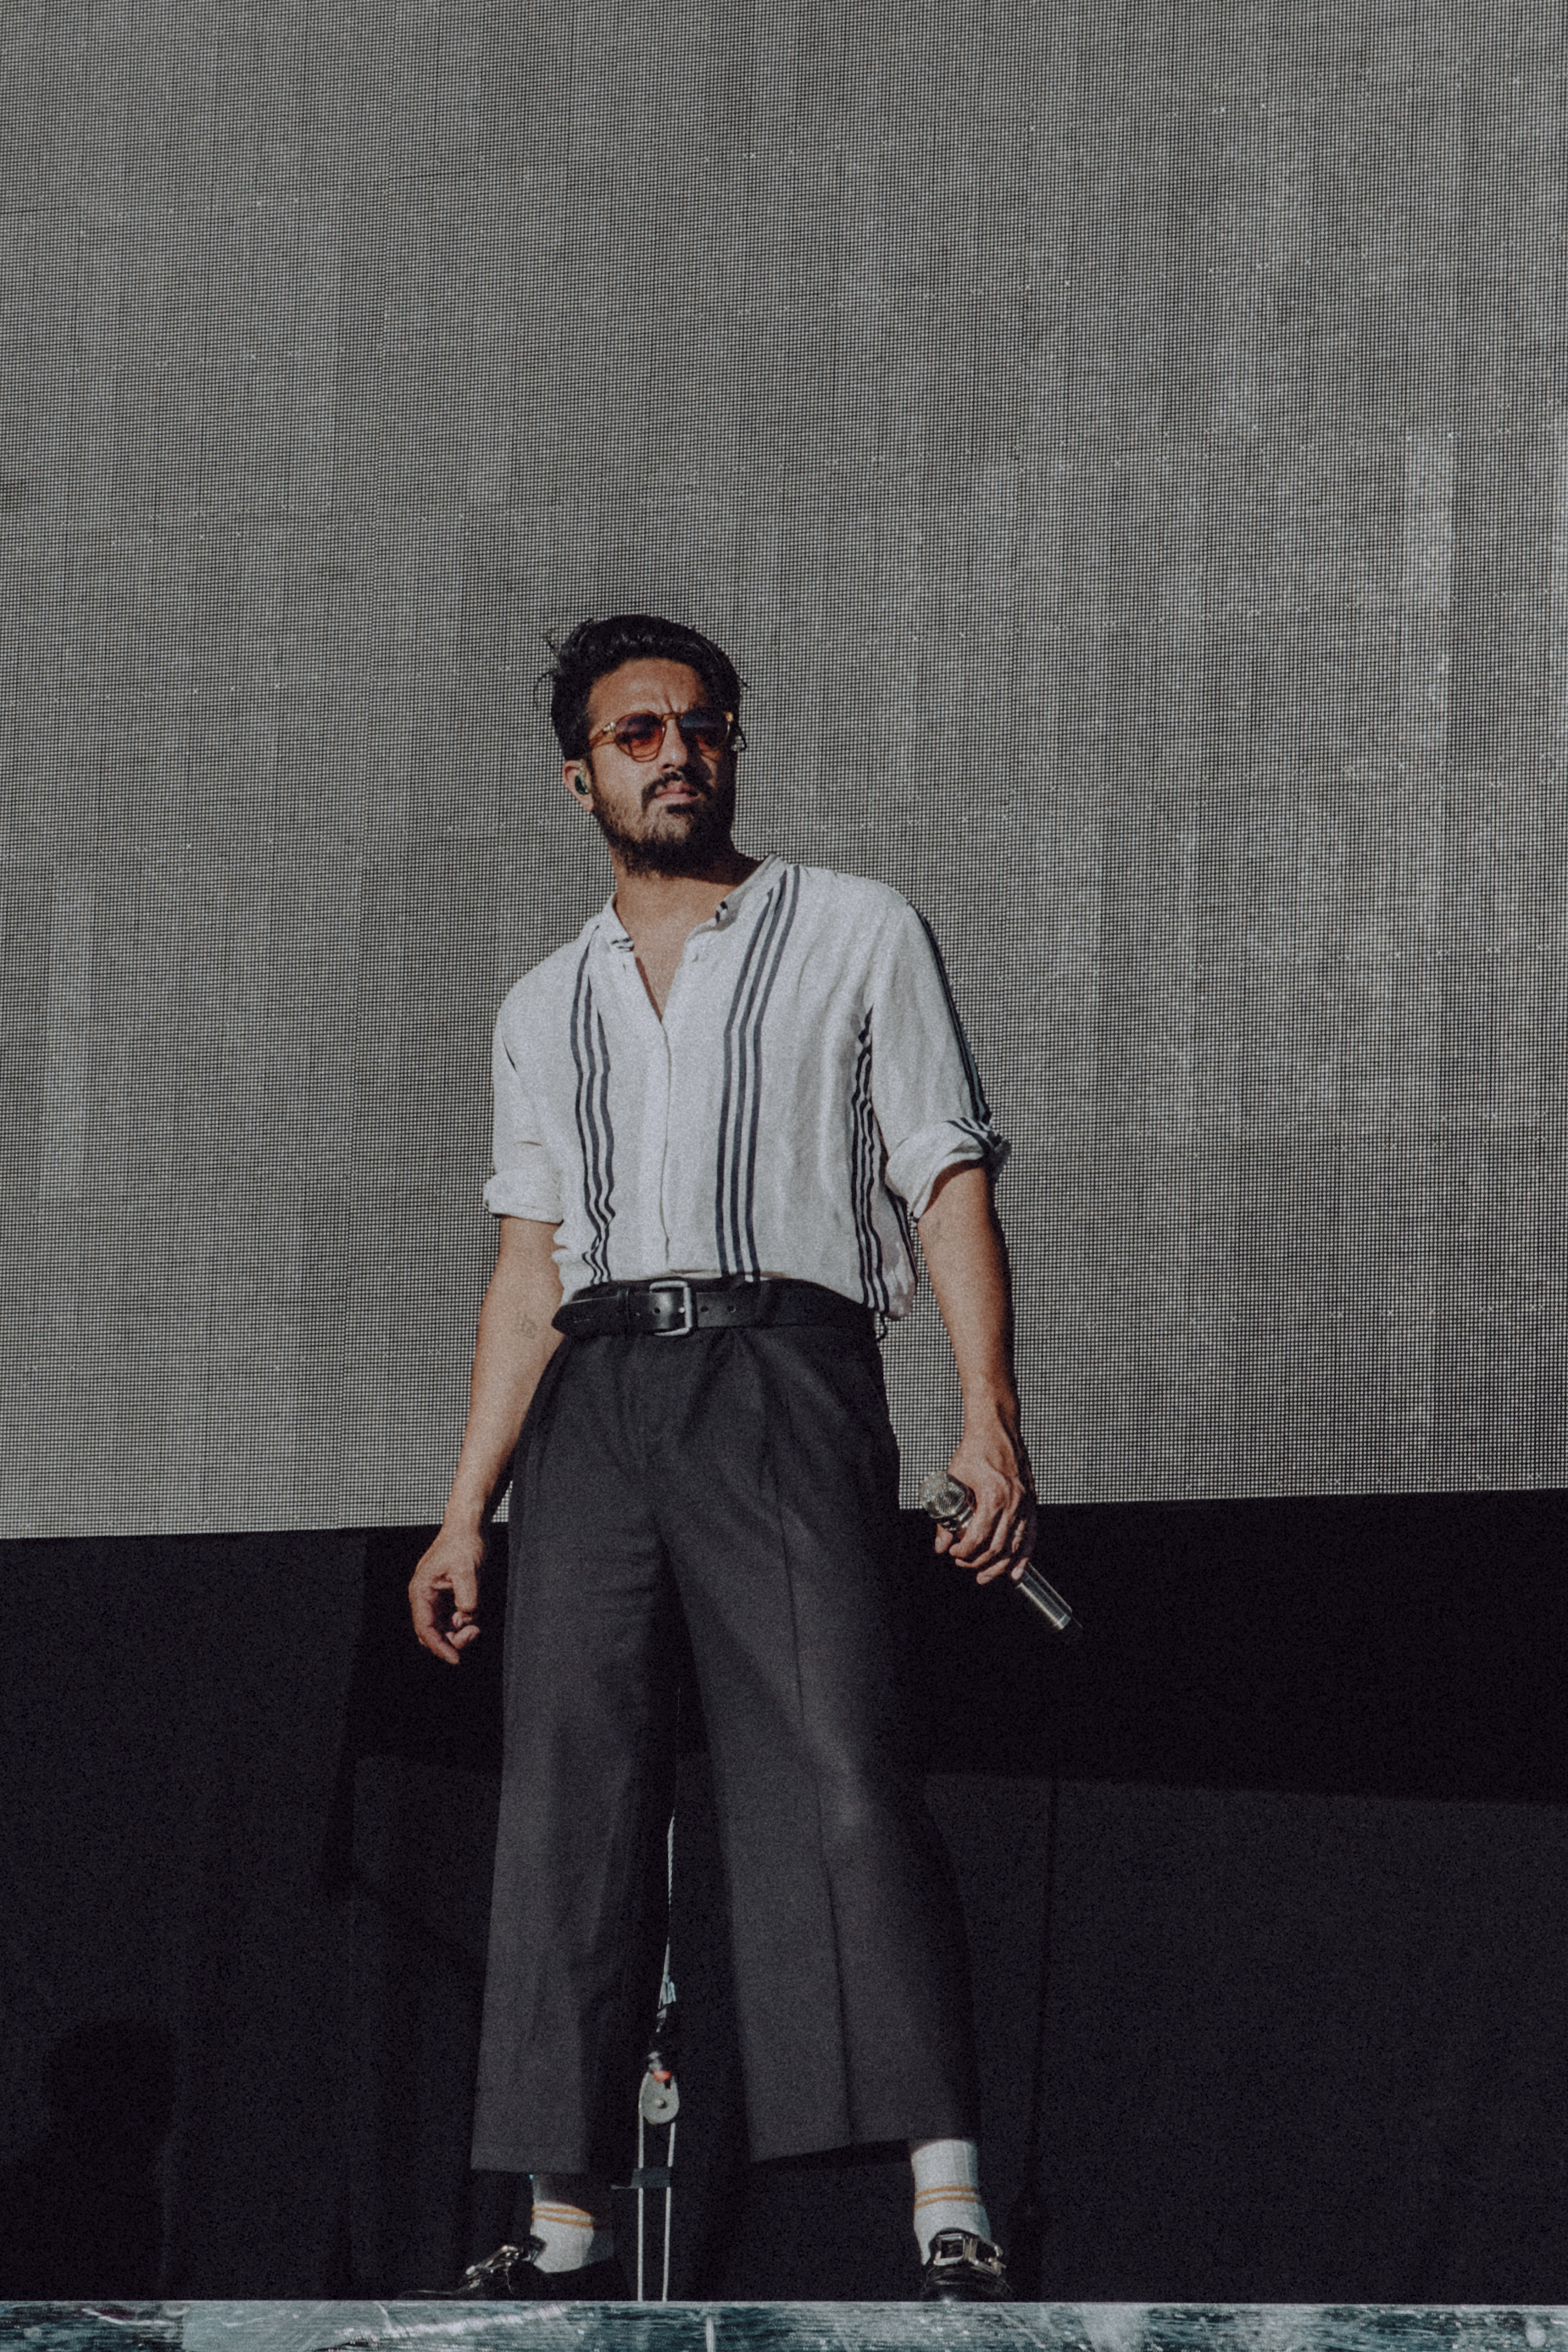 WILLIAMS_YOUNGTHEGIANT-1.jpg